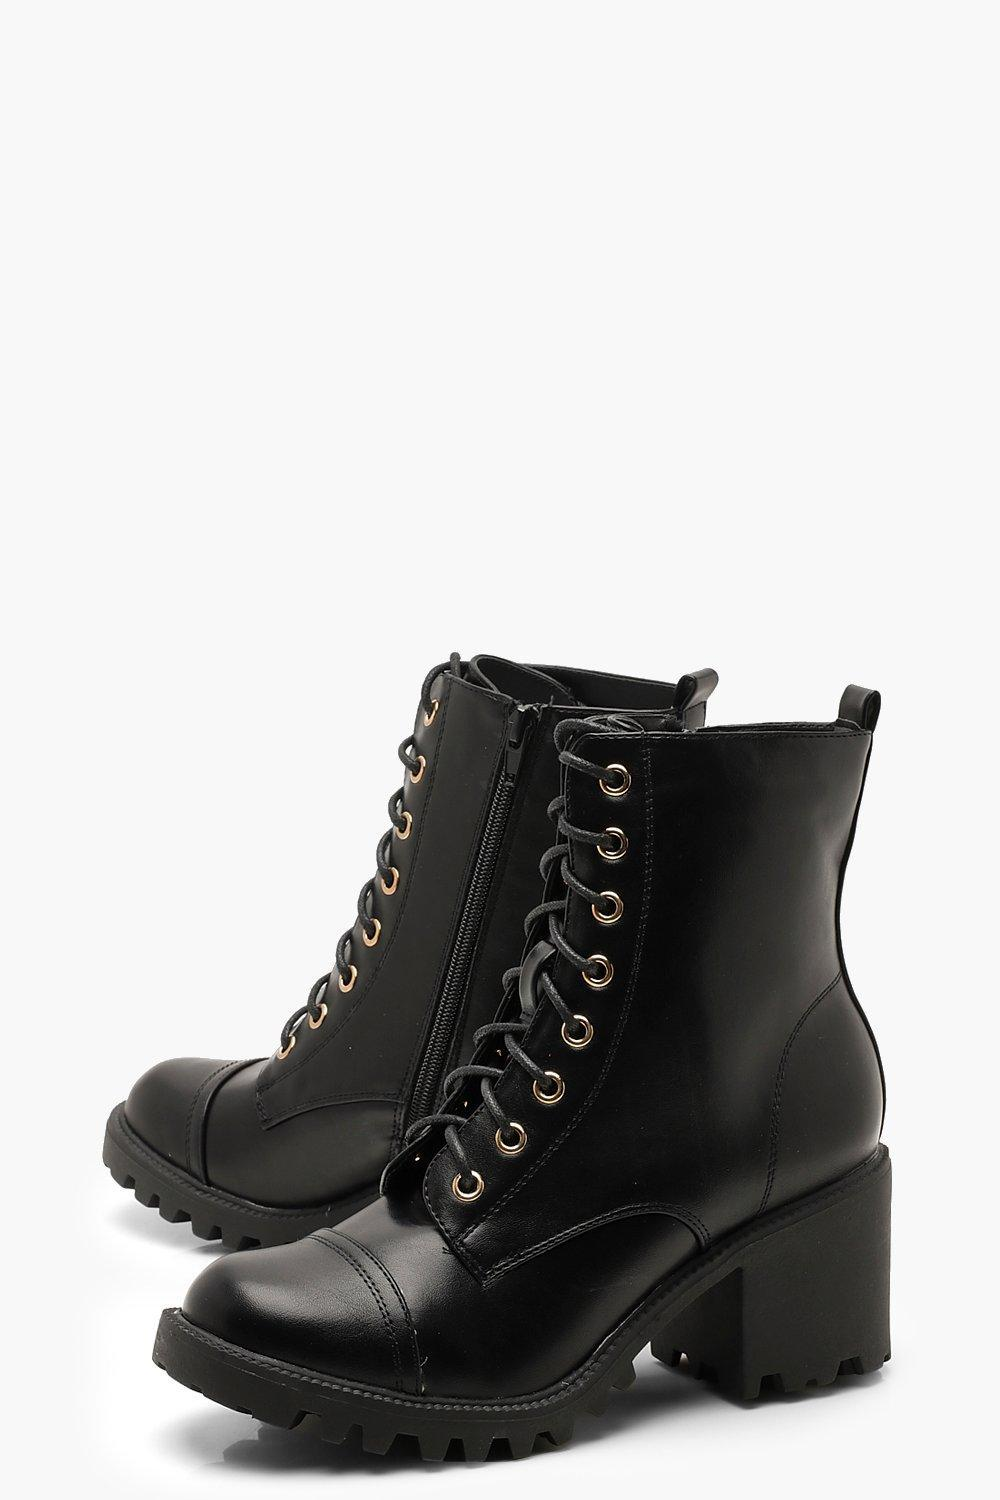 c8b42fc817 Boohoo Chunky Heel Lace Up Hiker Boots in Black - Lyst